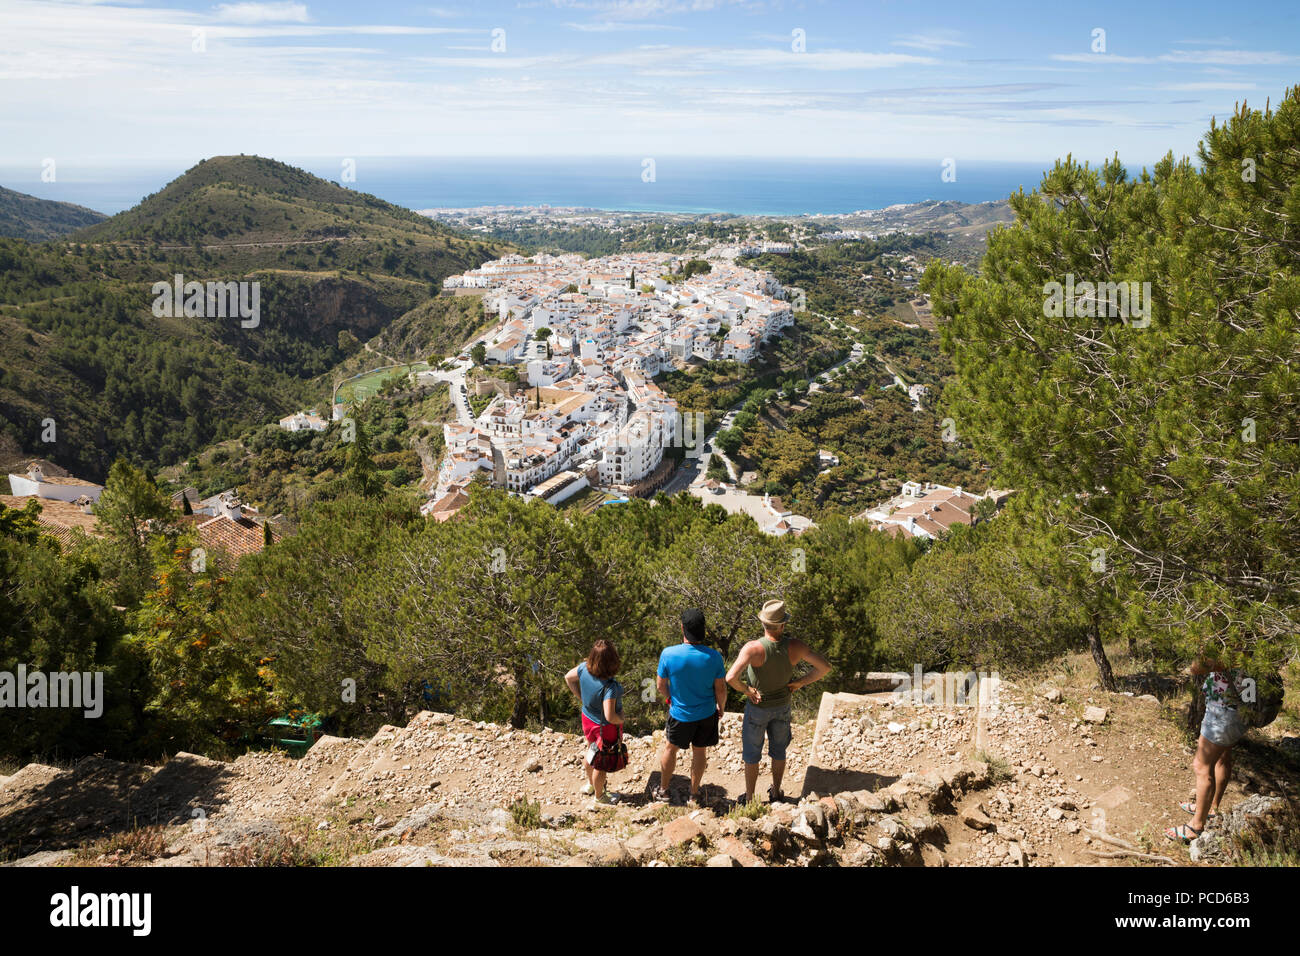 View over white Andalucian village with view to the sea, Frigiliana, Malaga Province, Costa del Sol, Andalucia, Spain, Europe - Stock Image